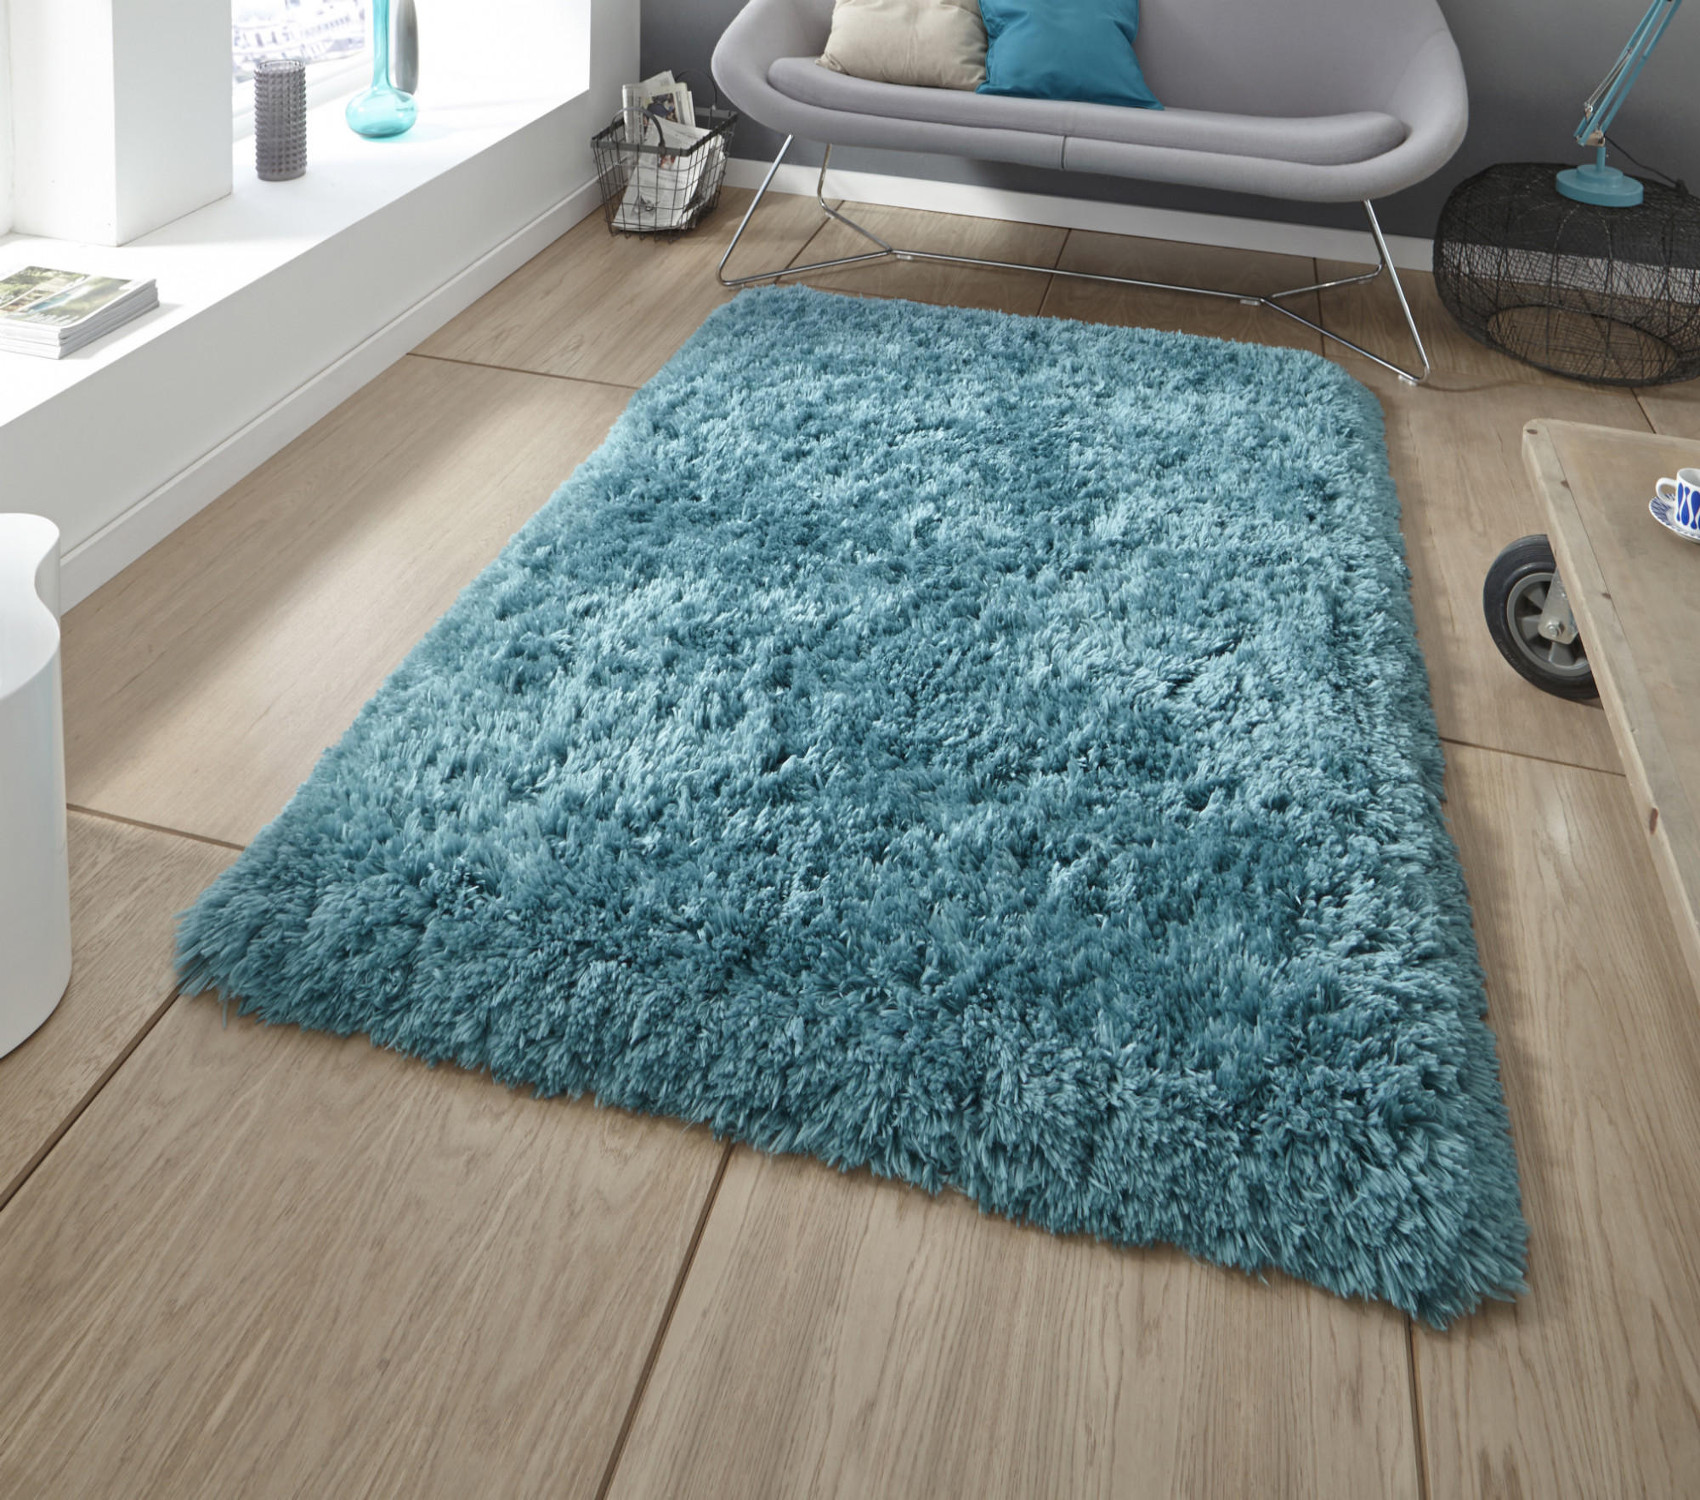 home room luxury hand super thick itm pile steel mat rug decor shaggy plain soft blue tufted montana